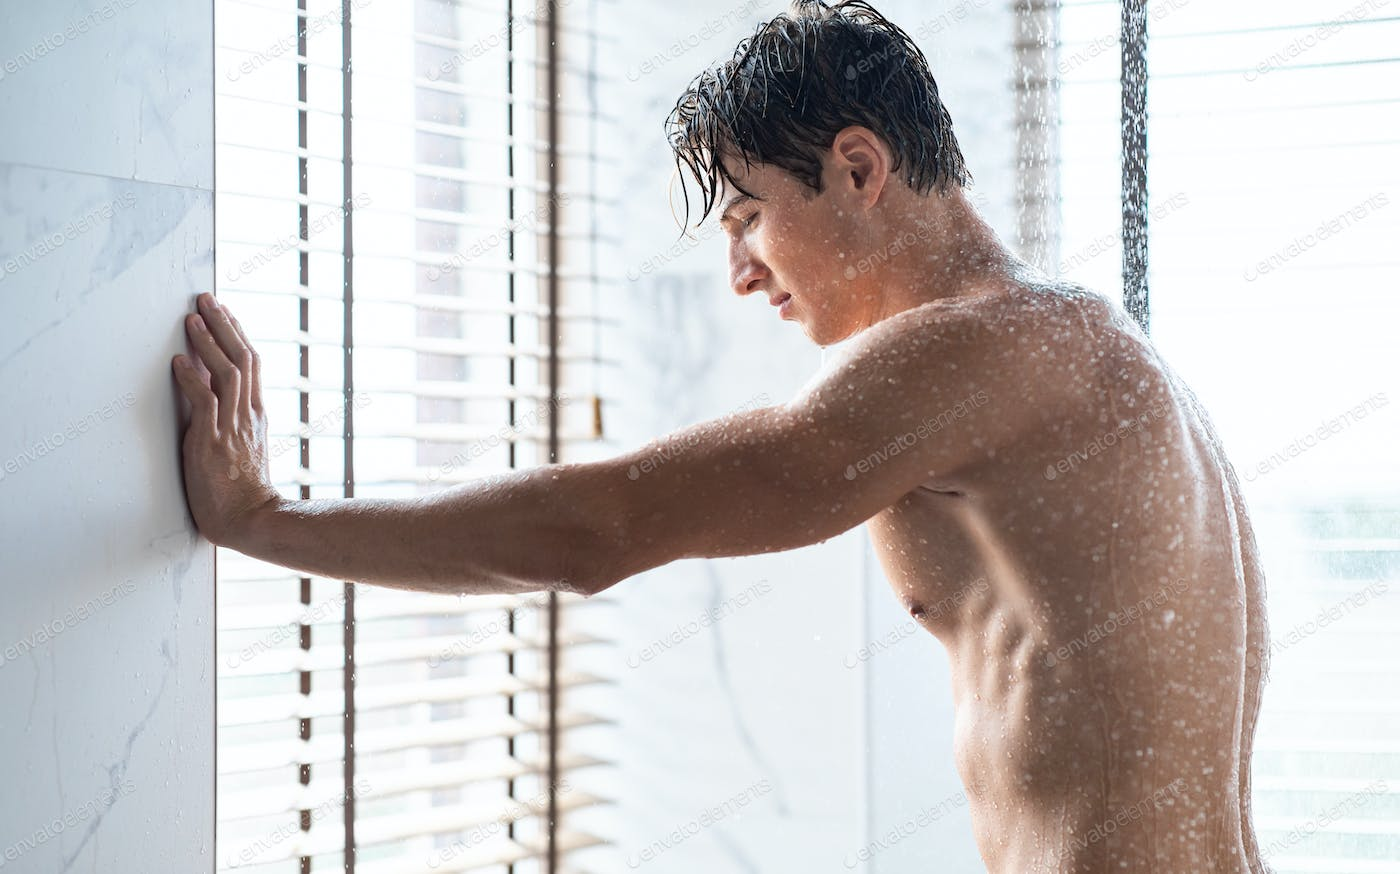 Handsome Young Guy Taking Hot Shower In Bathroom Photo By Prostock Studio On Envato Elements